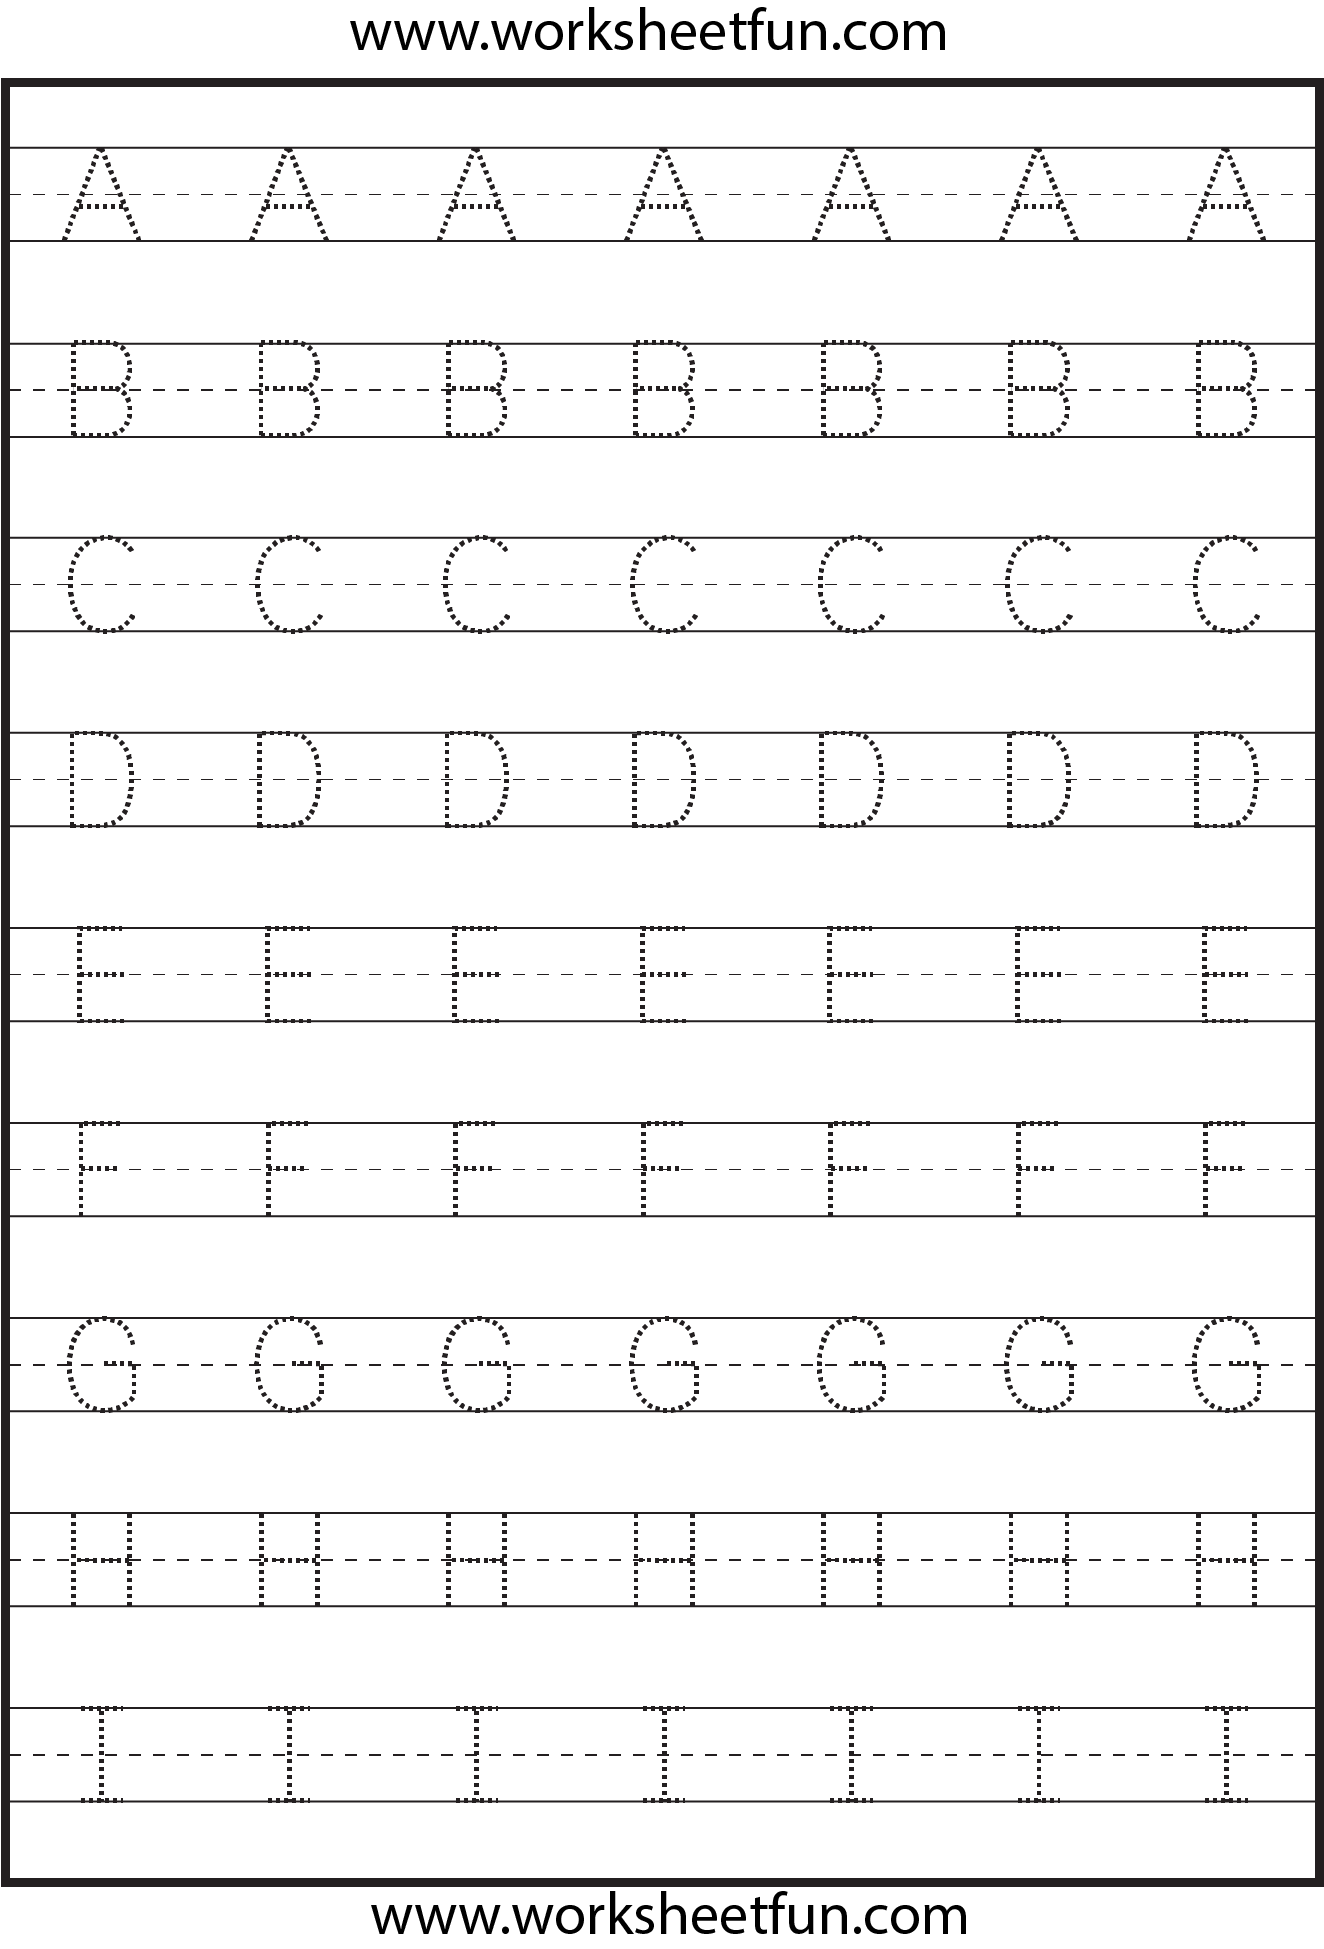 worksheet Letter Tracing Worksheet tracing uppercase letters capital 3 worksheets free letter tracing